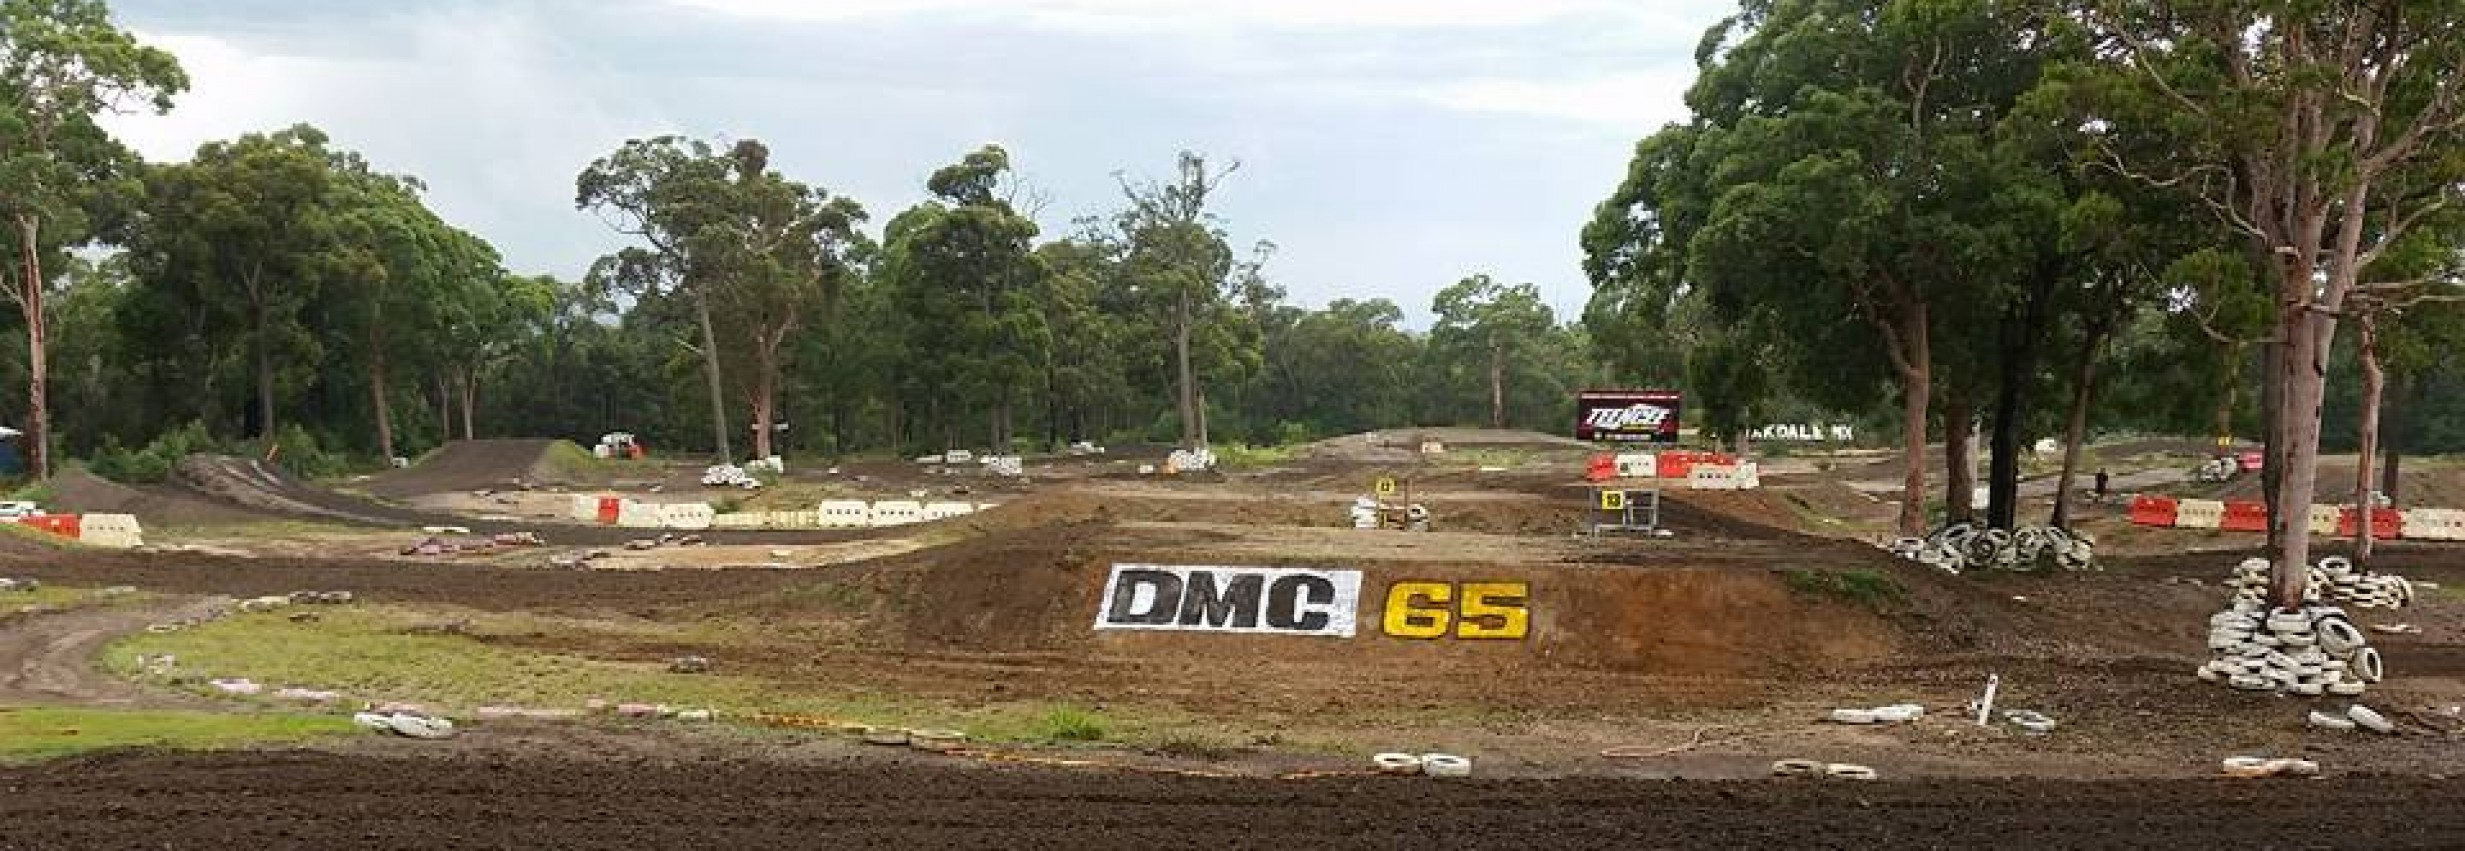 Oakdale Junior Motocross Club Track